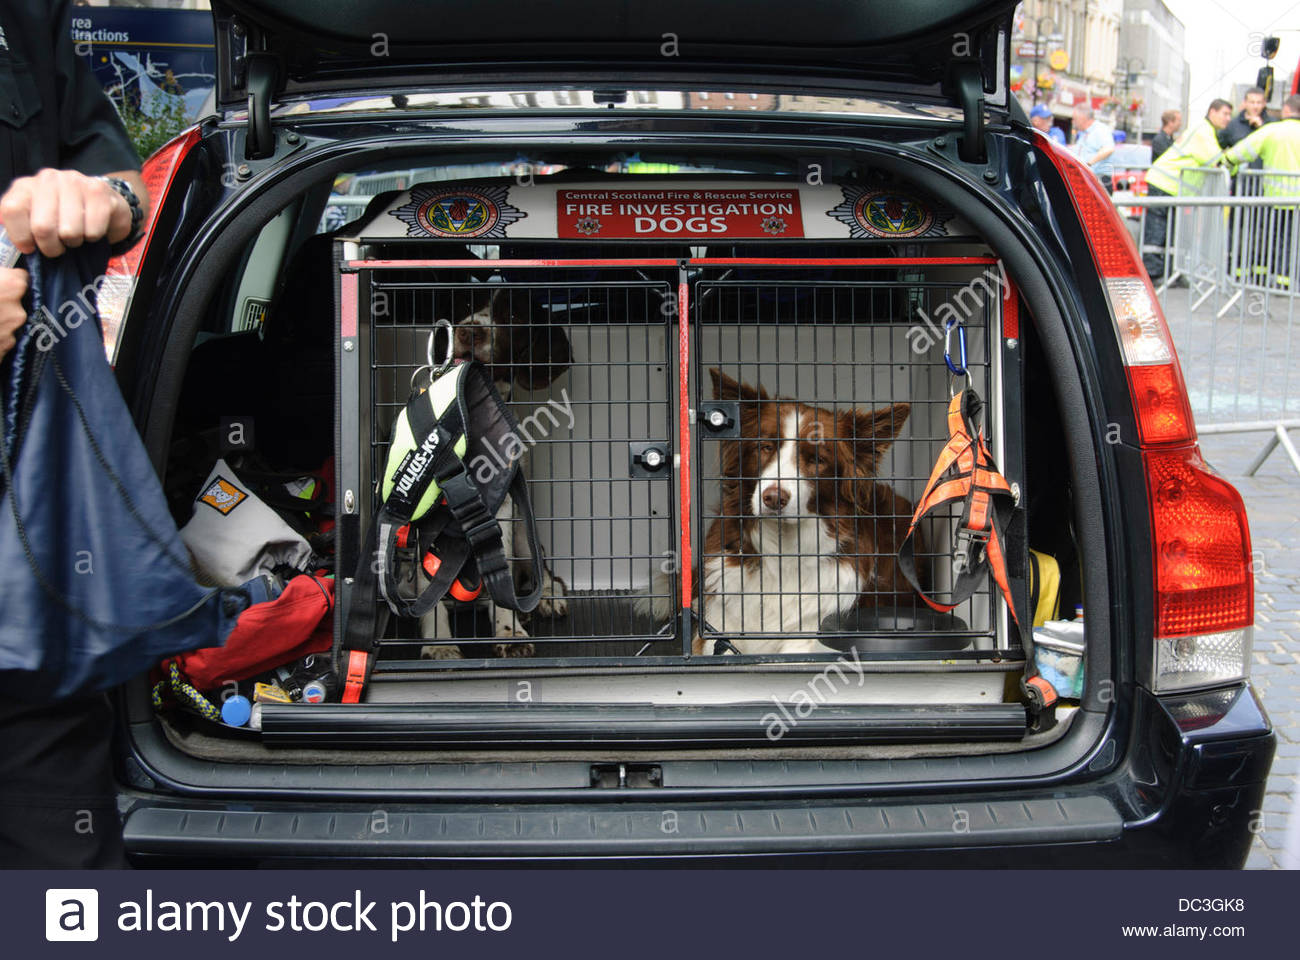 Falkirk, UK on Thursday, August 8, 2013. Fire Investigation Dogs. The Scottish Fire and Rescue Service are taking - Stock Image